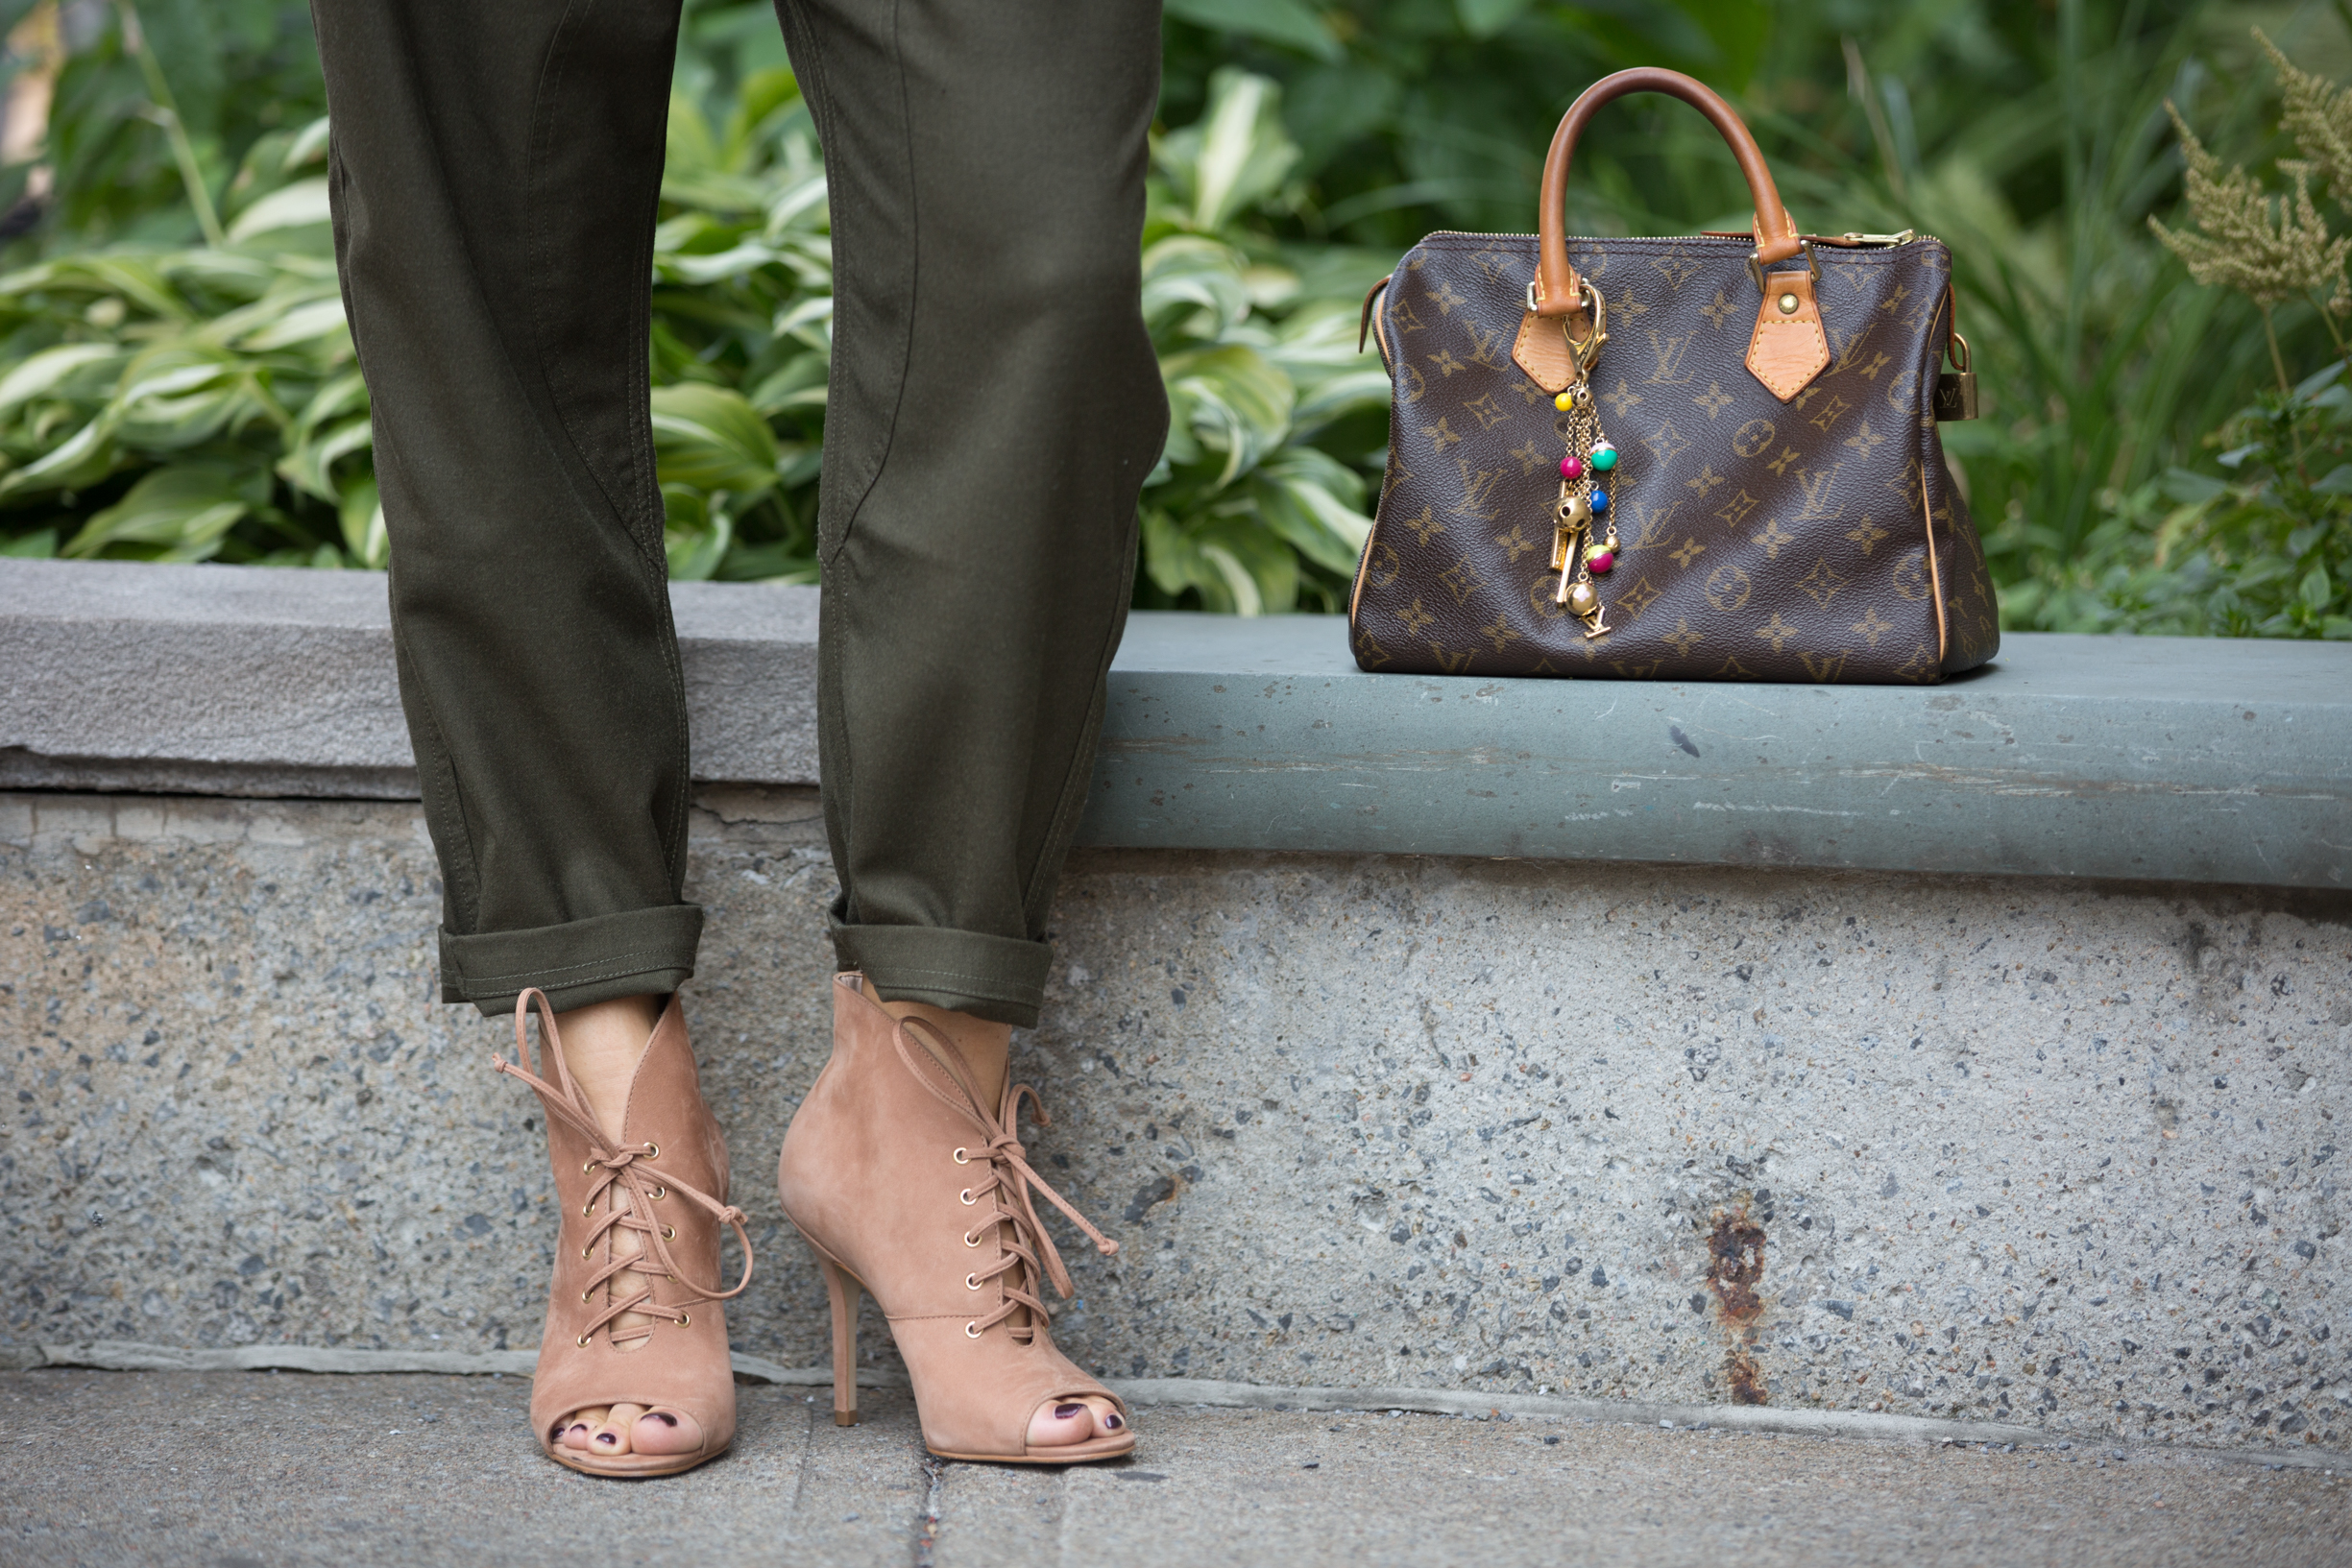 mademoiselle jules wearing also shoes peep toe and LV bag